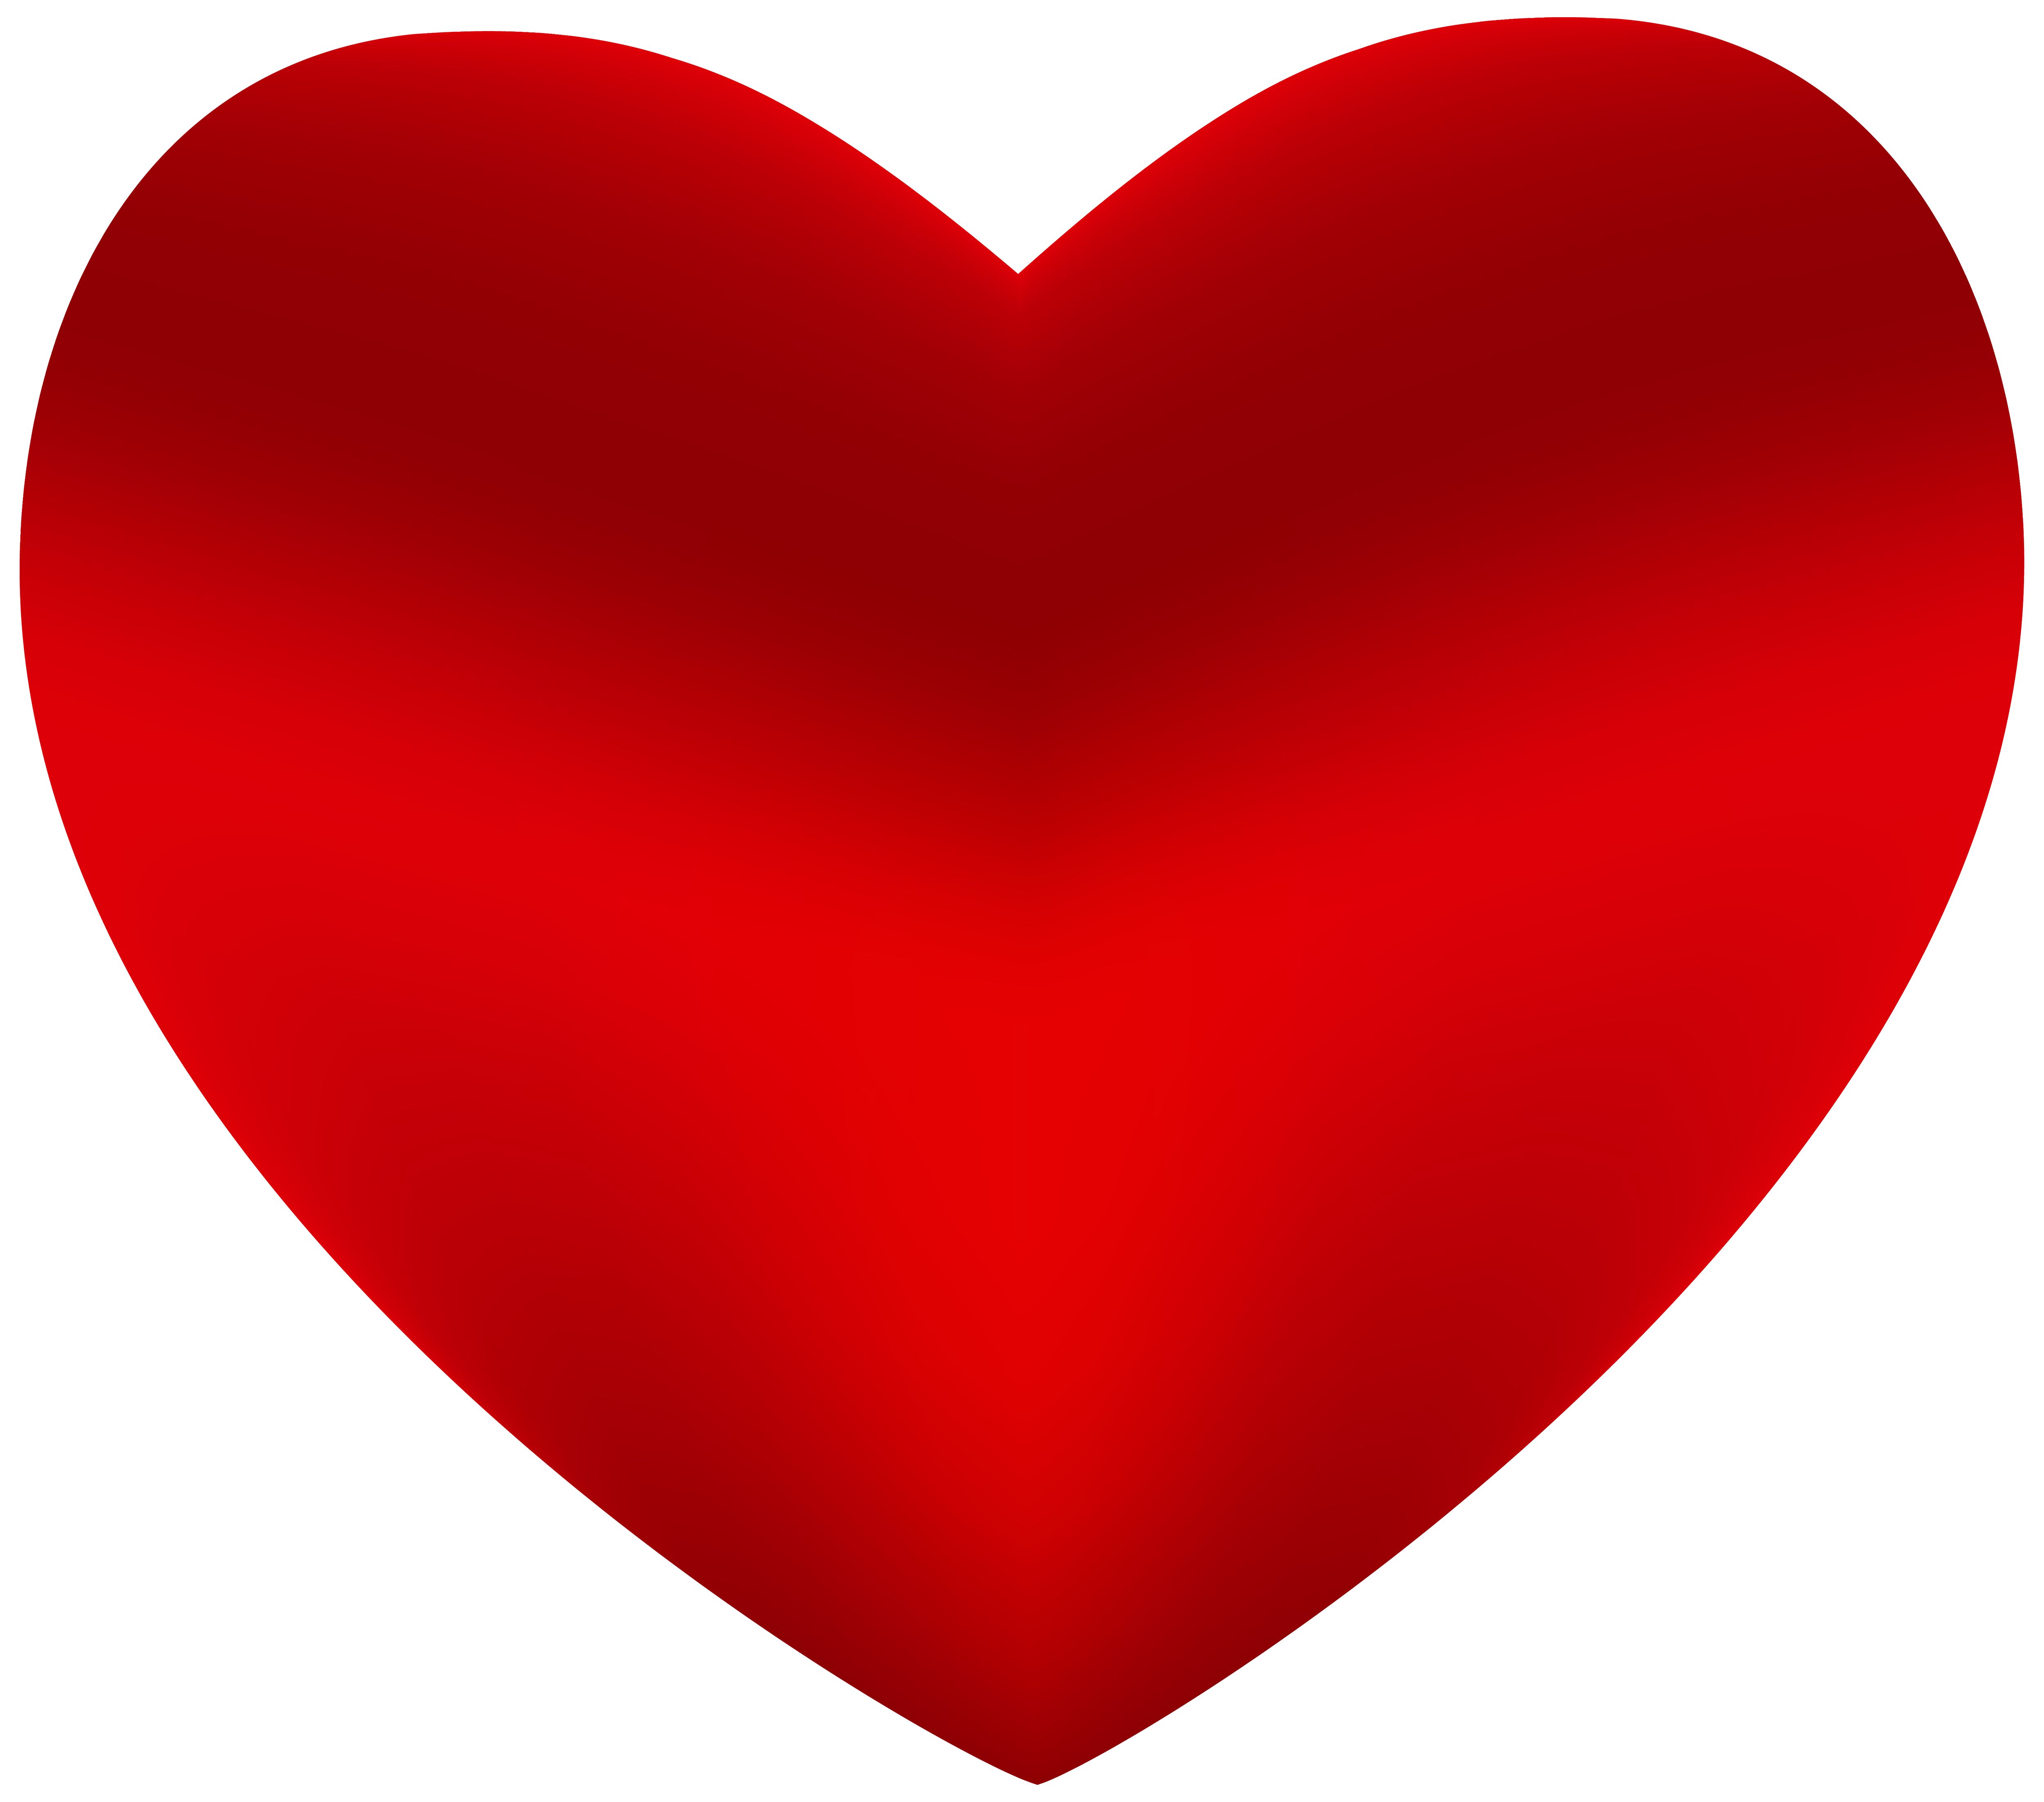 34 Beautiful Heart Clipart Red Hearts Art Red Heart Love Png